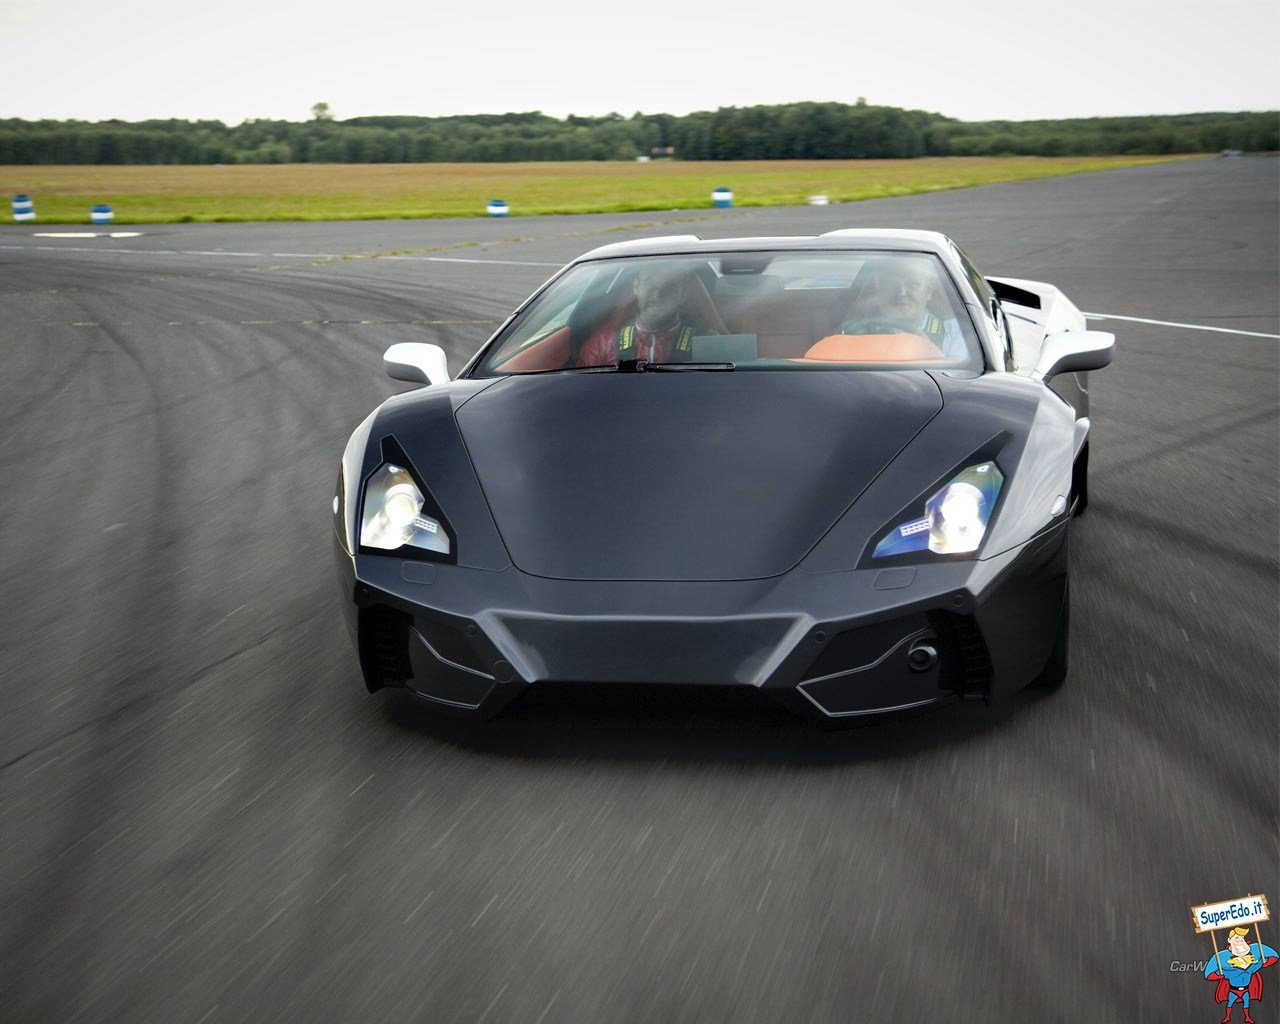 Latest Foto Arrinera Supercar • Foto In Alta Definizione Hd Free Download